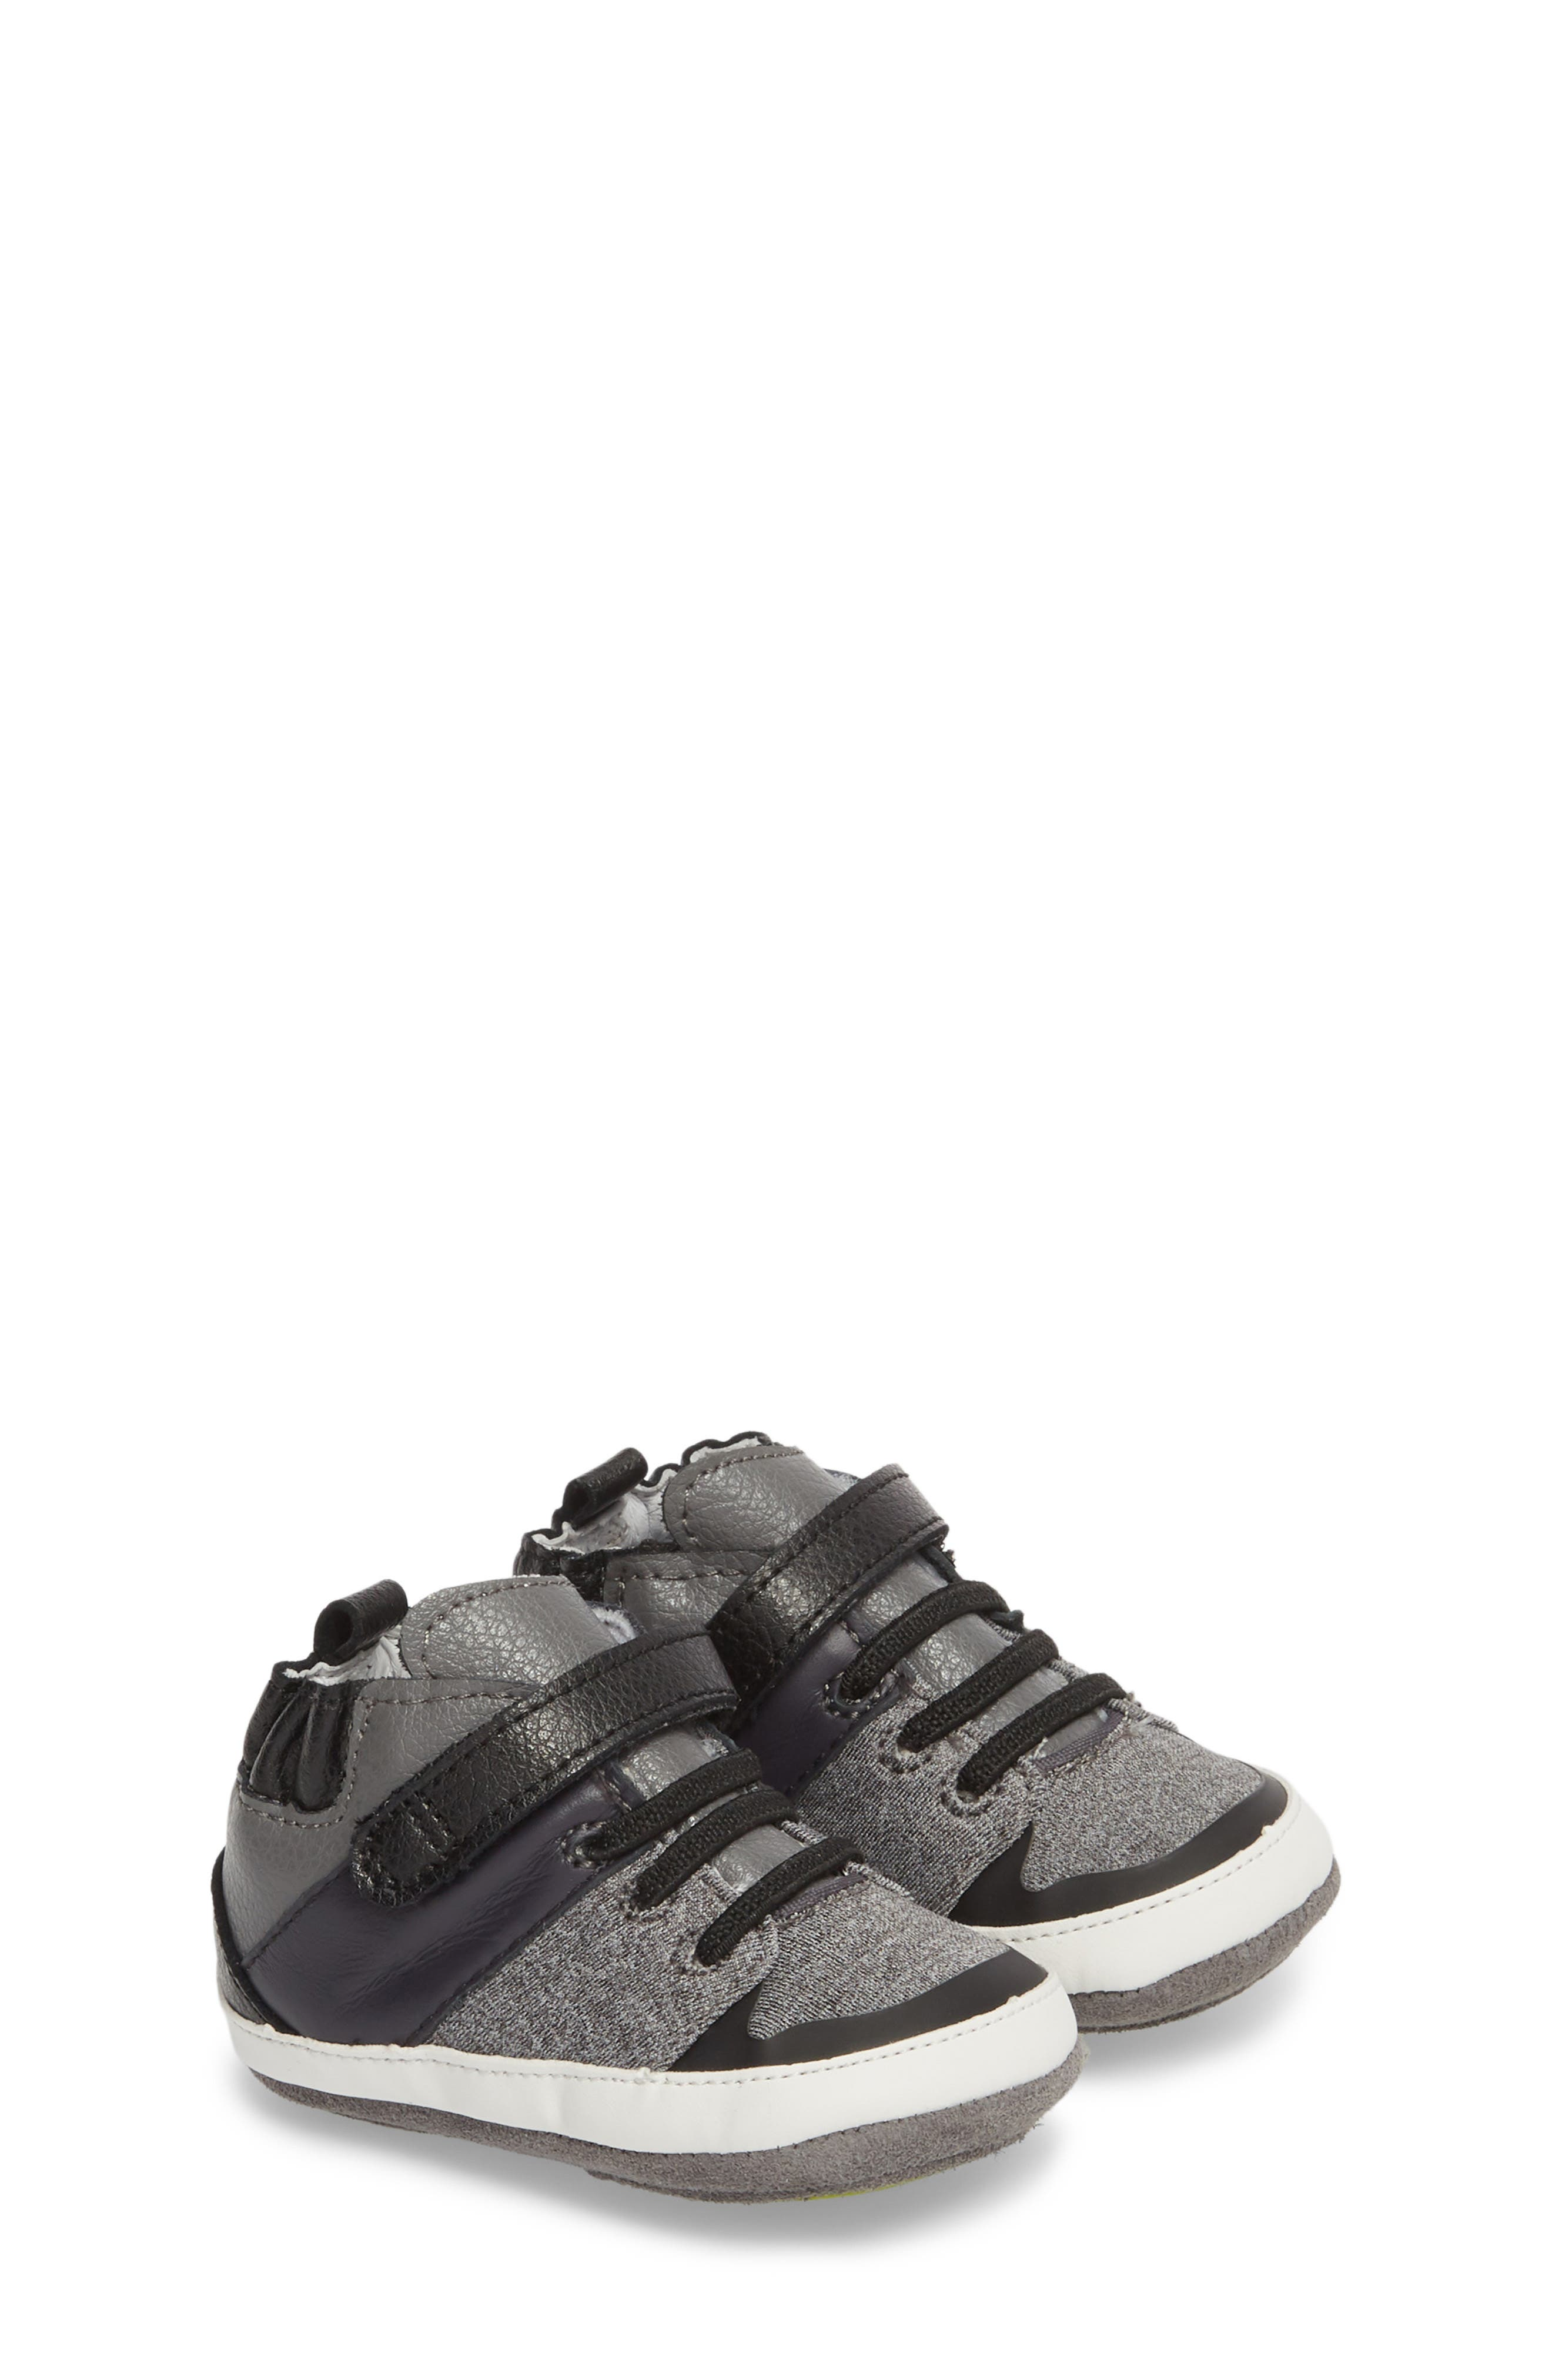 Robeez Zachary High Top Crib Sneaker